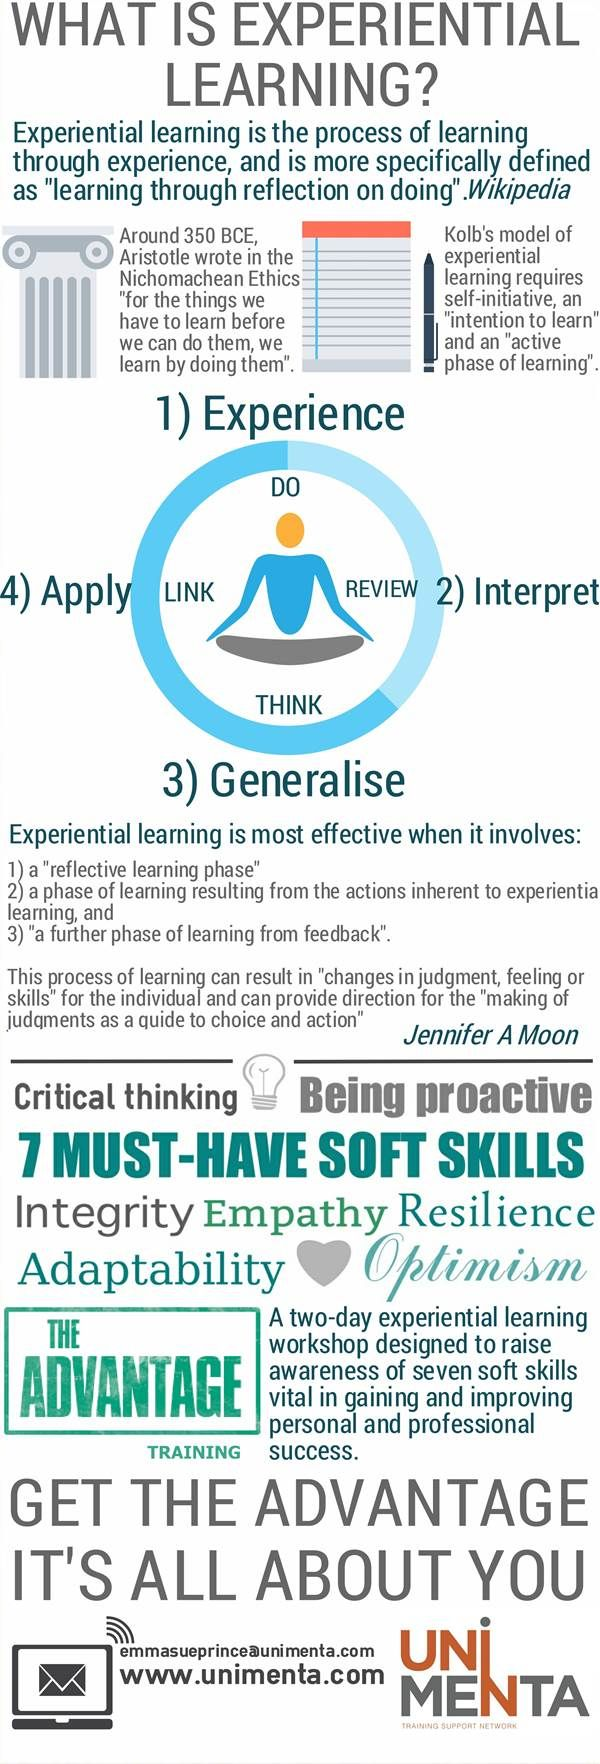 interviewing kolb model David kolb's learning styles model, and more free online materials for organizational and personal development, and free business training tools, tips and guides.